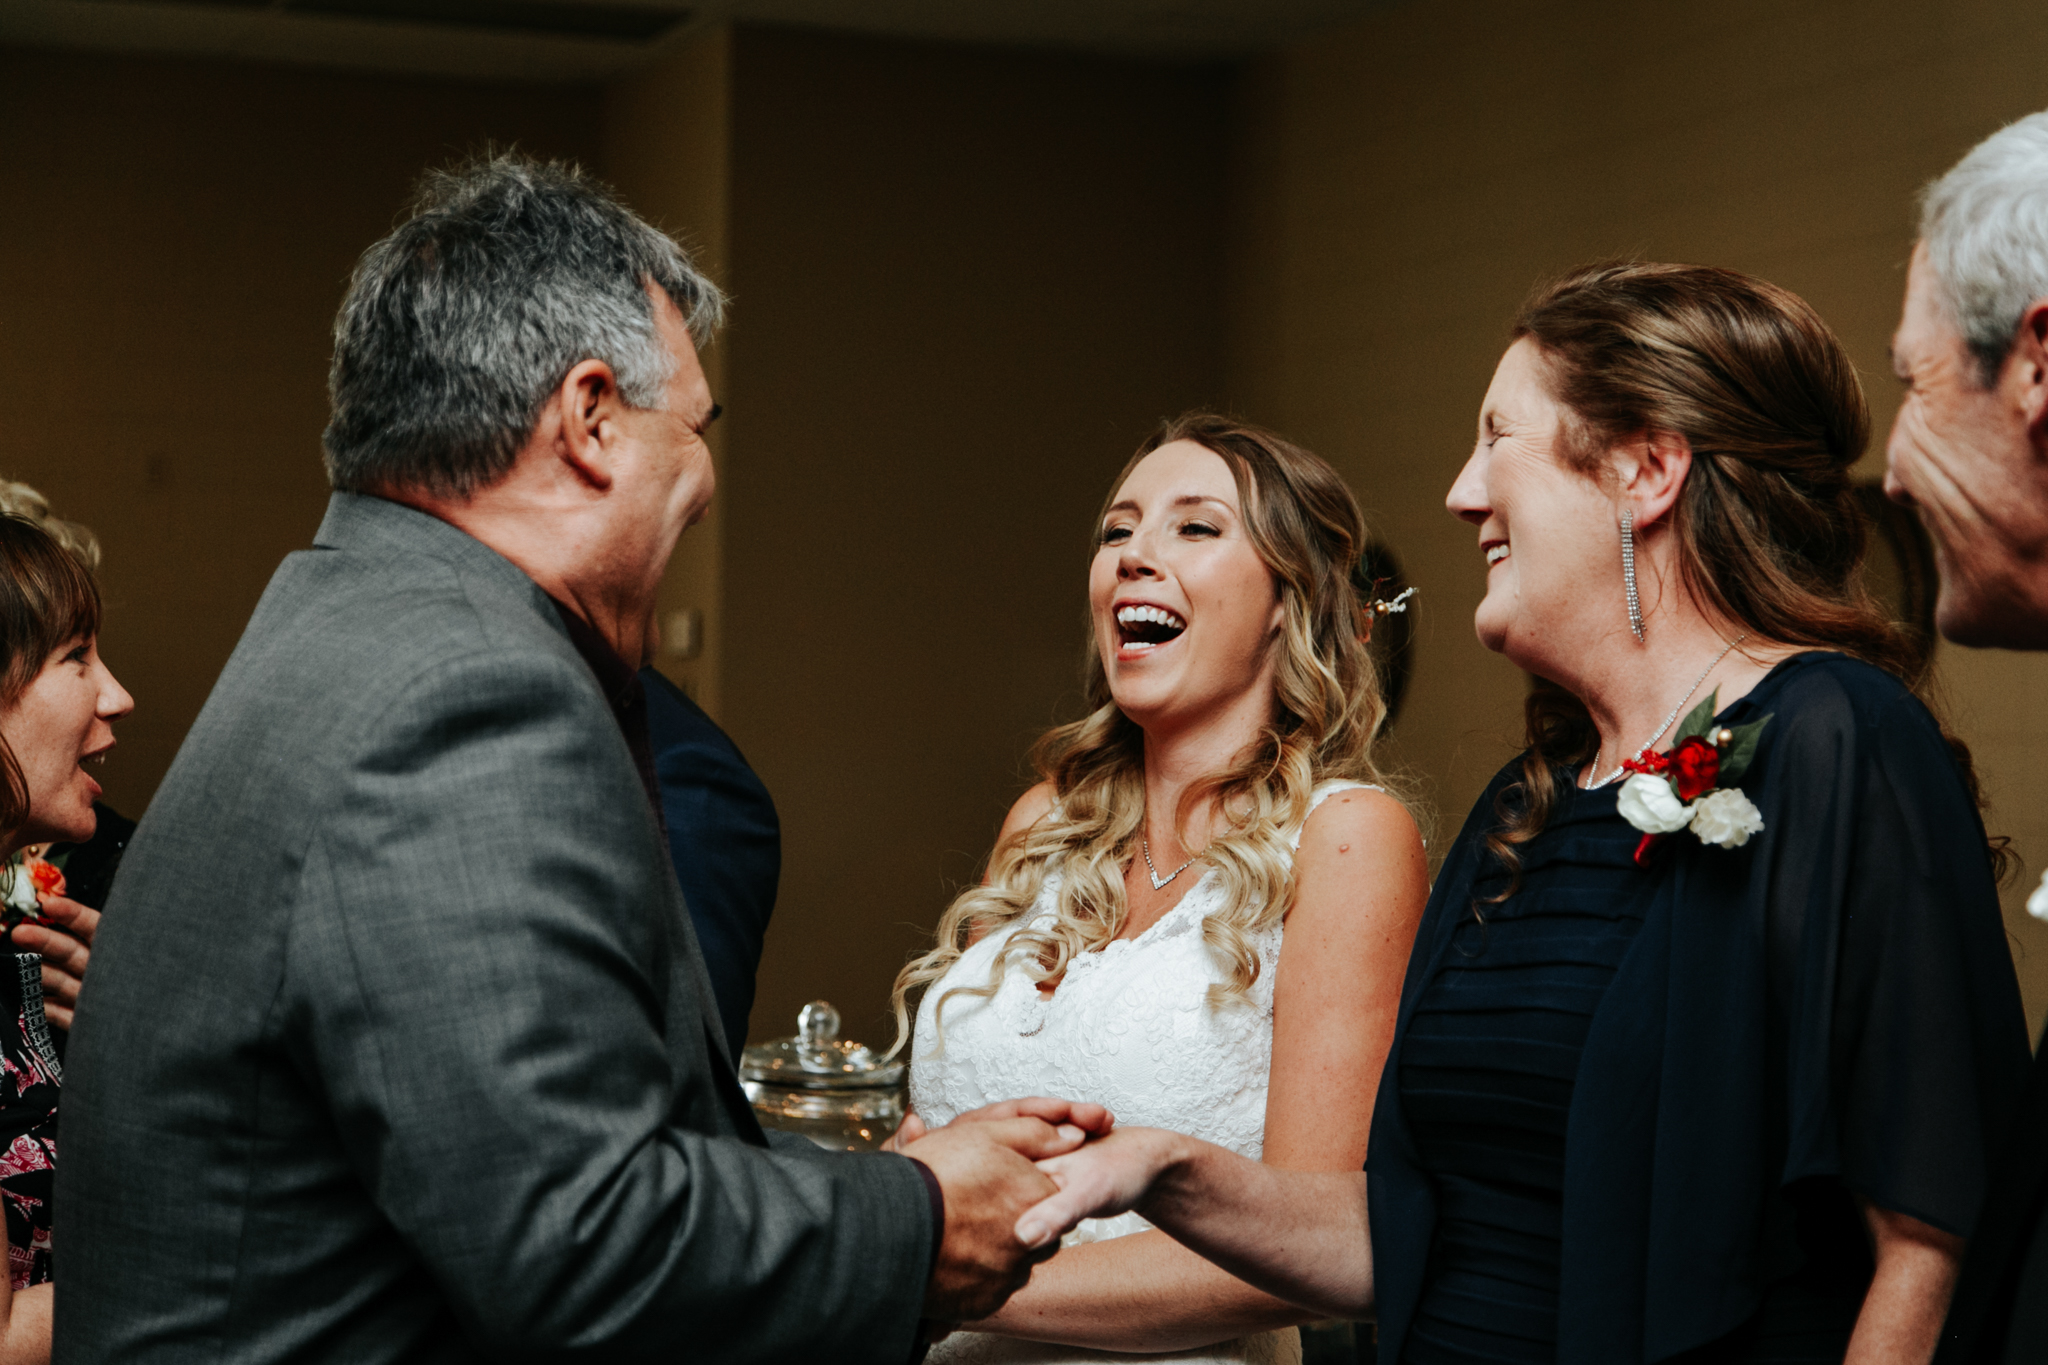 lethbridge-wedding-photography-love-and-be-loved-rocky-mountain-turf-club-ceremony-picture-image-photo-25.jpg